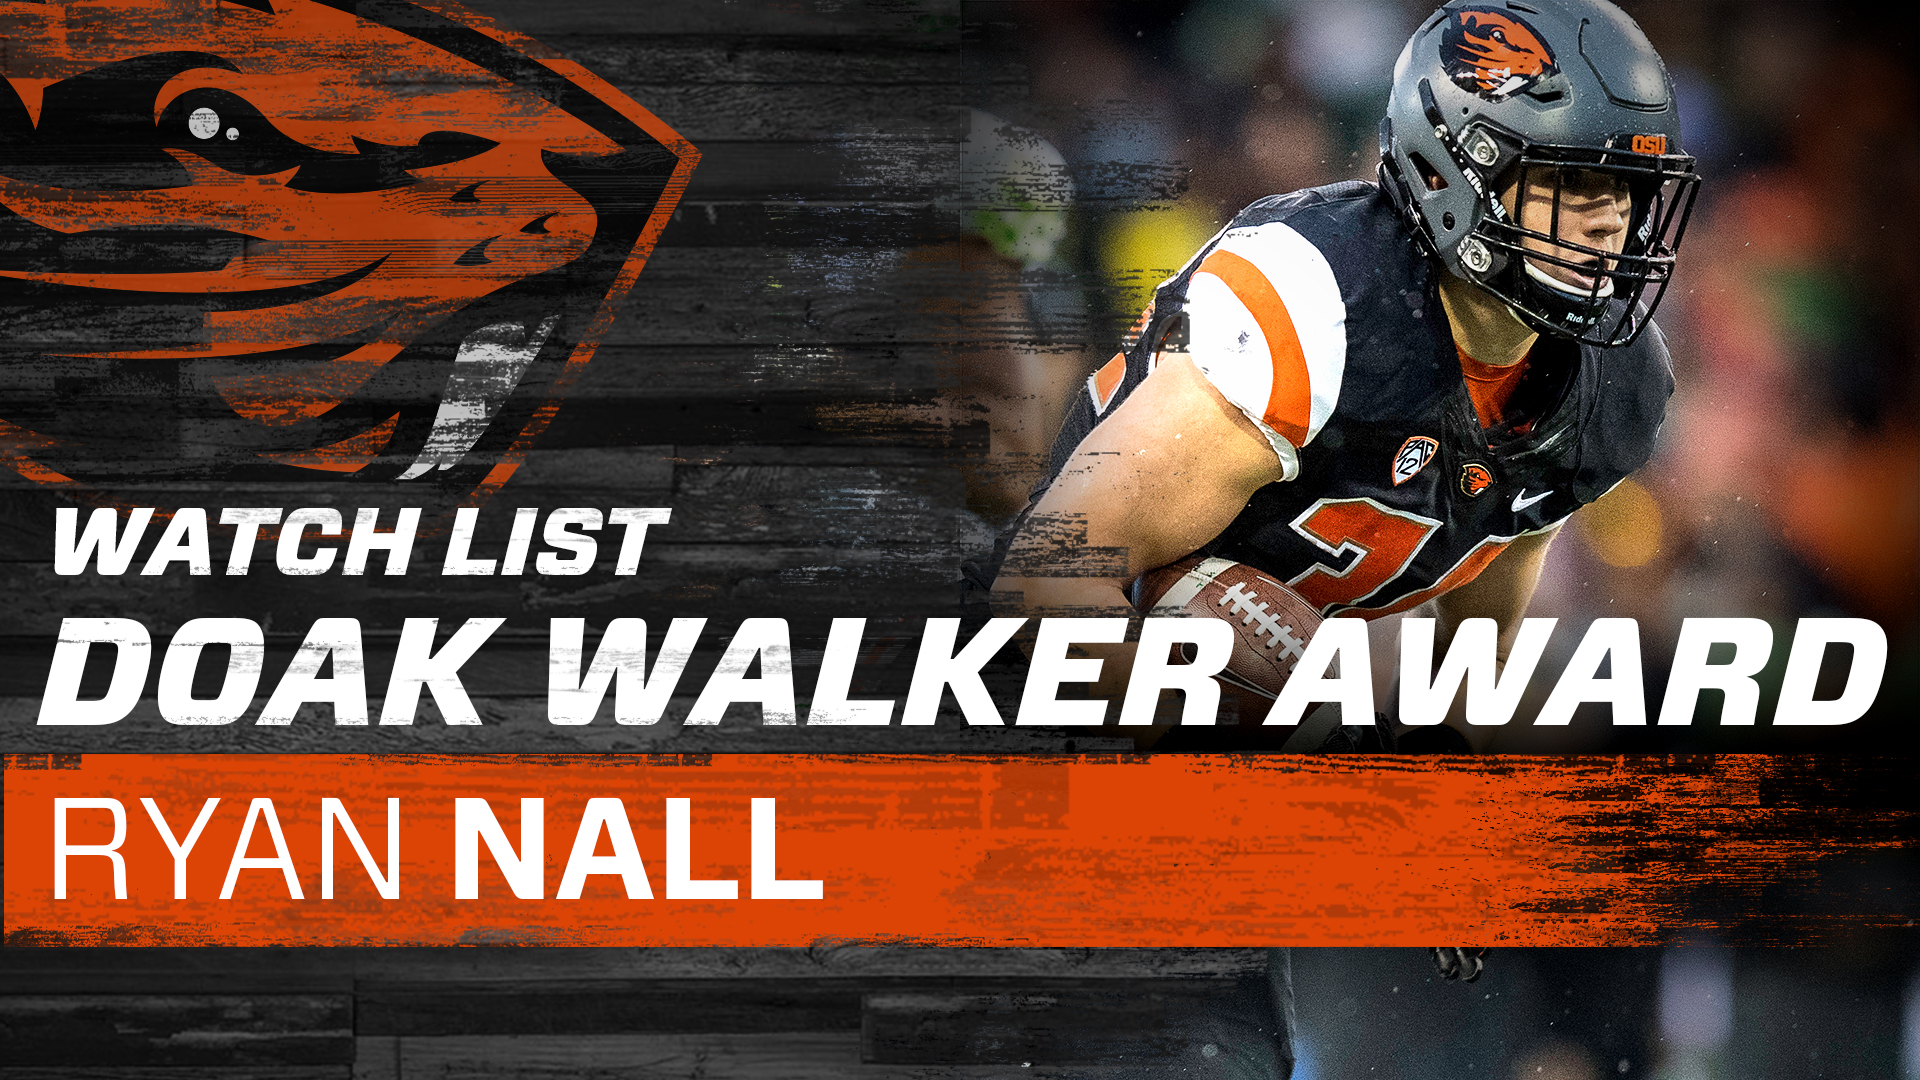 Ryan_nall_doak_walker_award_watch_list